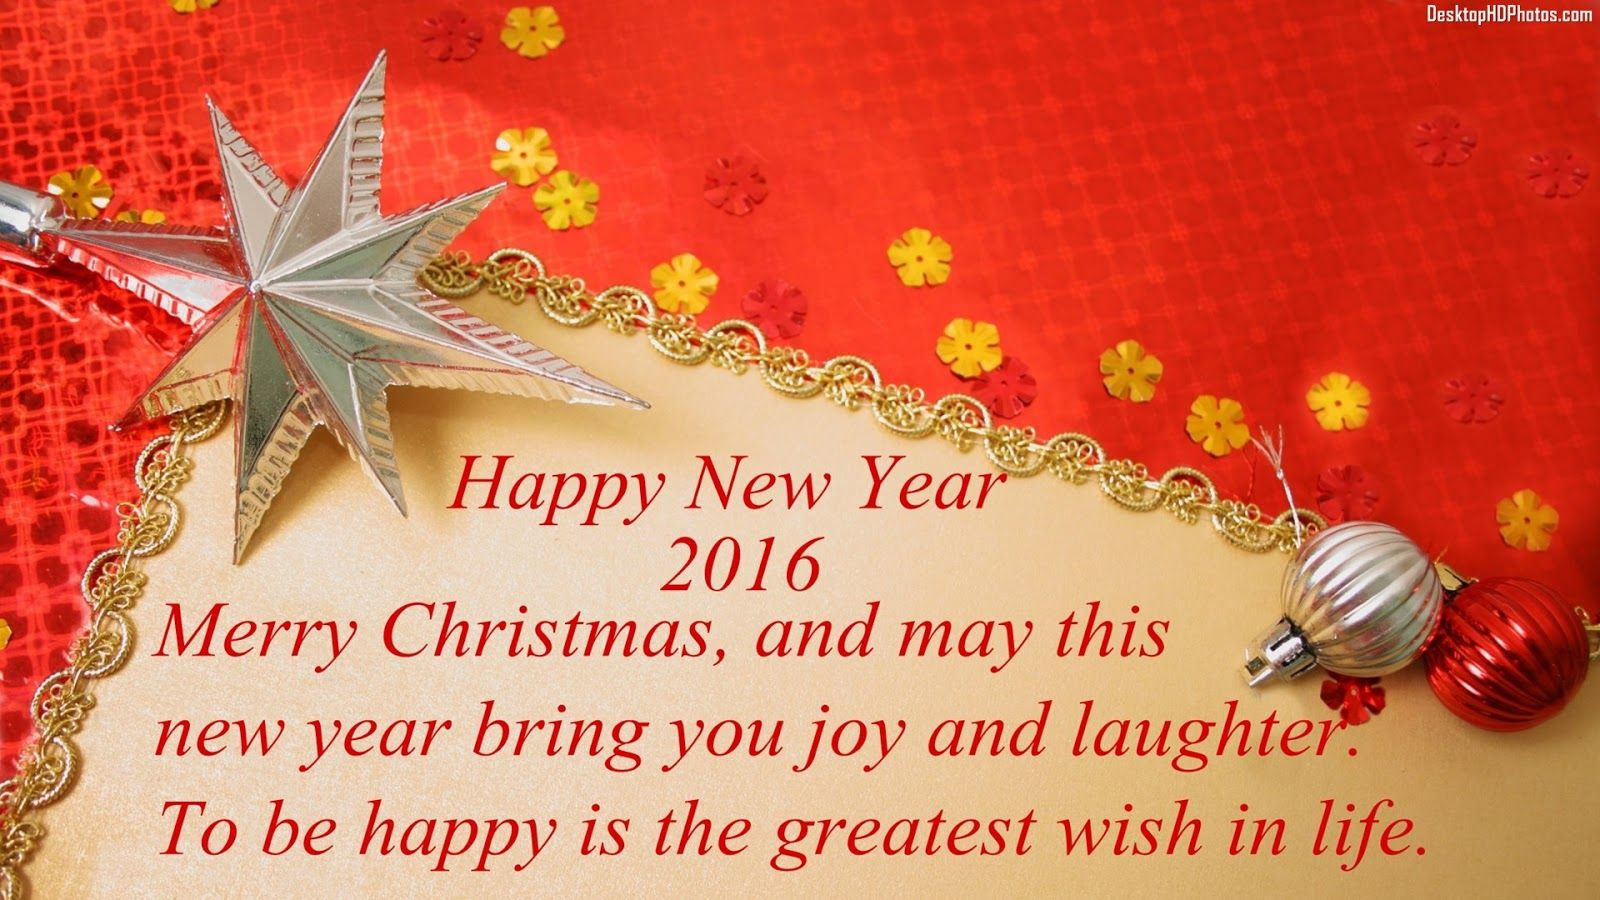 Merry Christmas Wallpapers HD Free Download TechBeasts Happy New Year